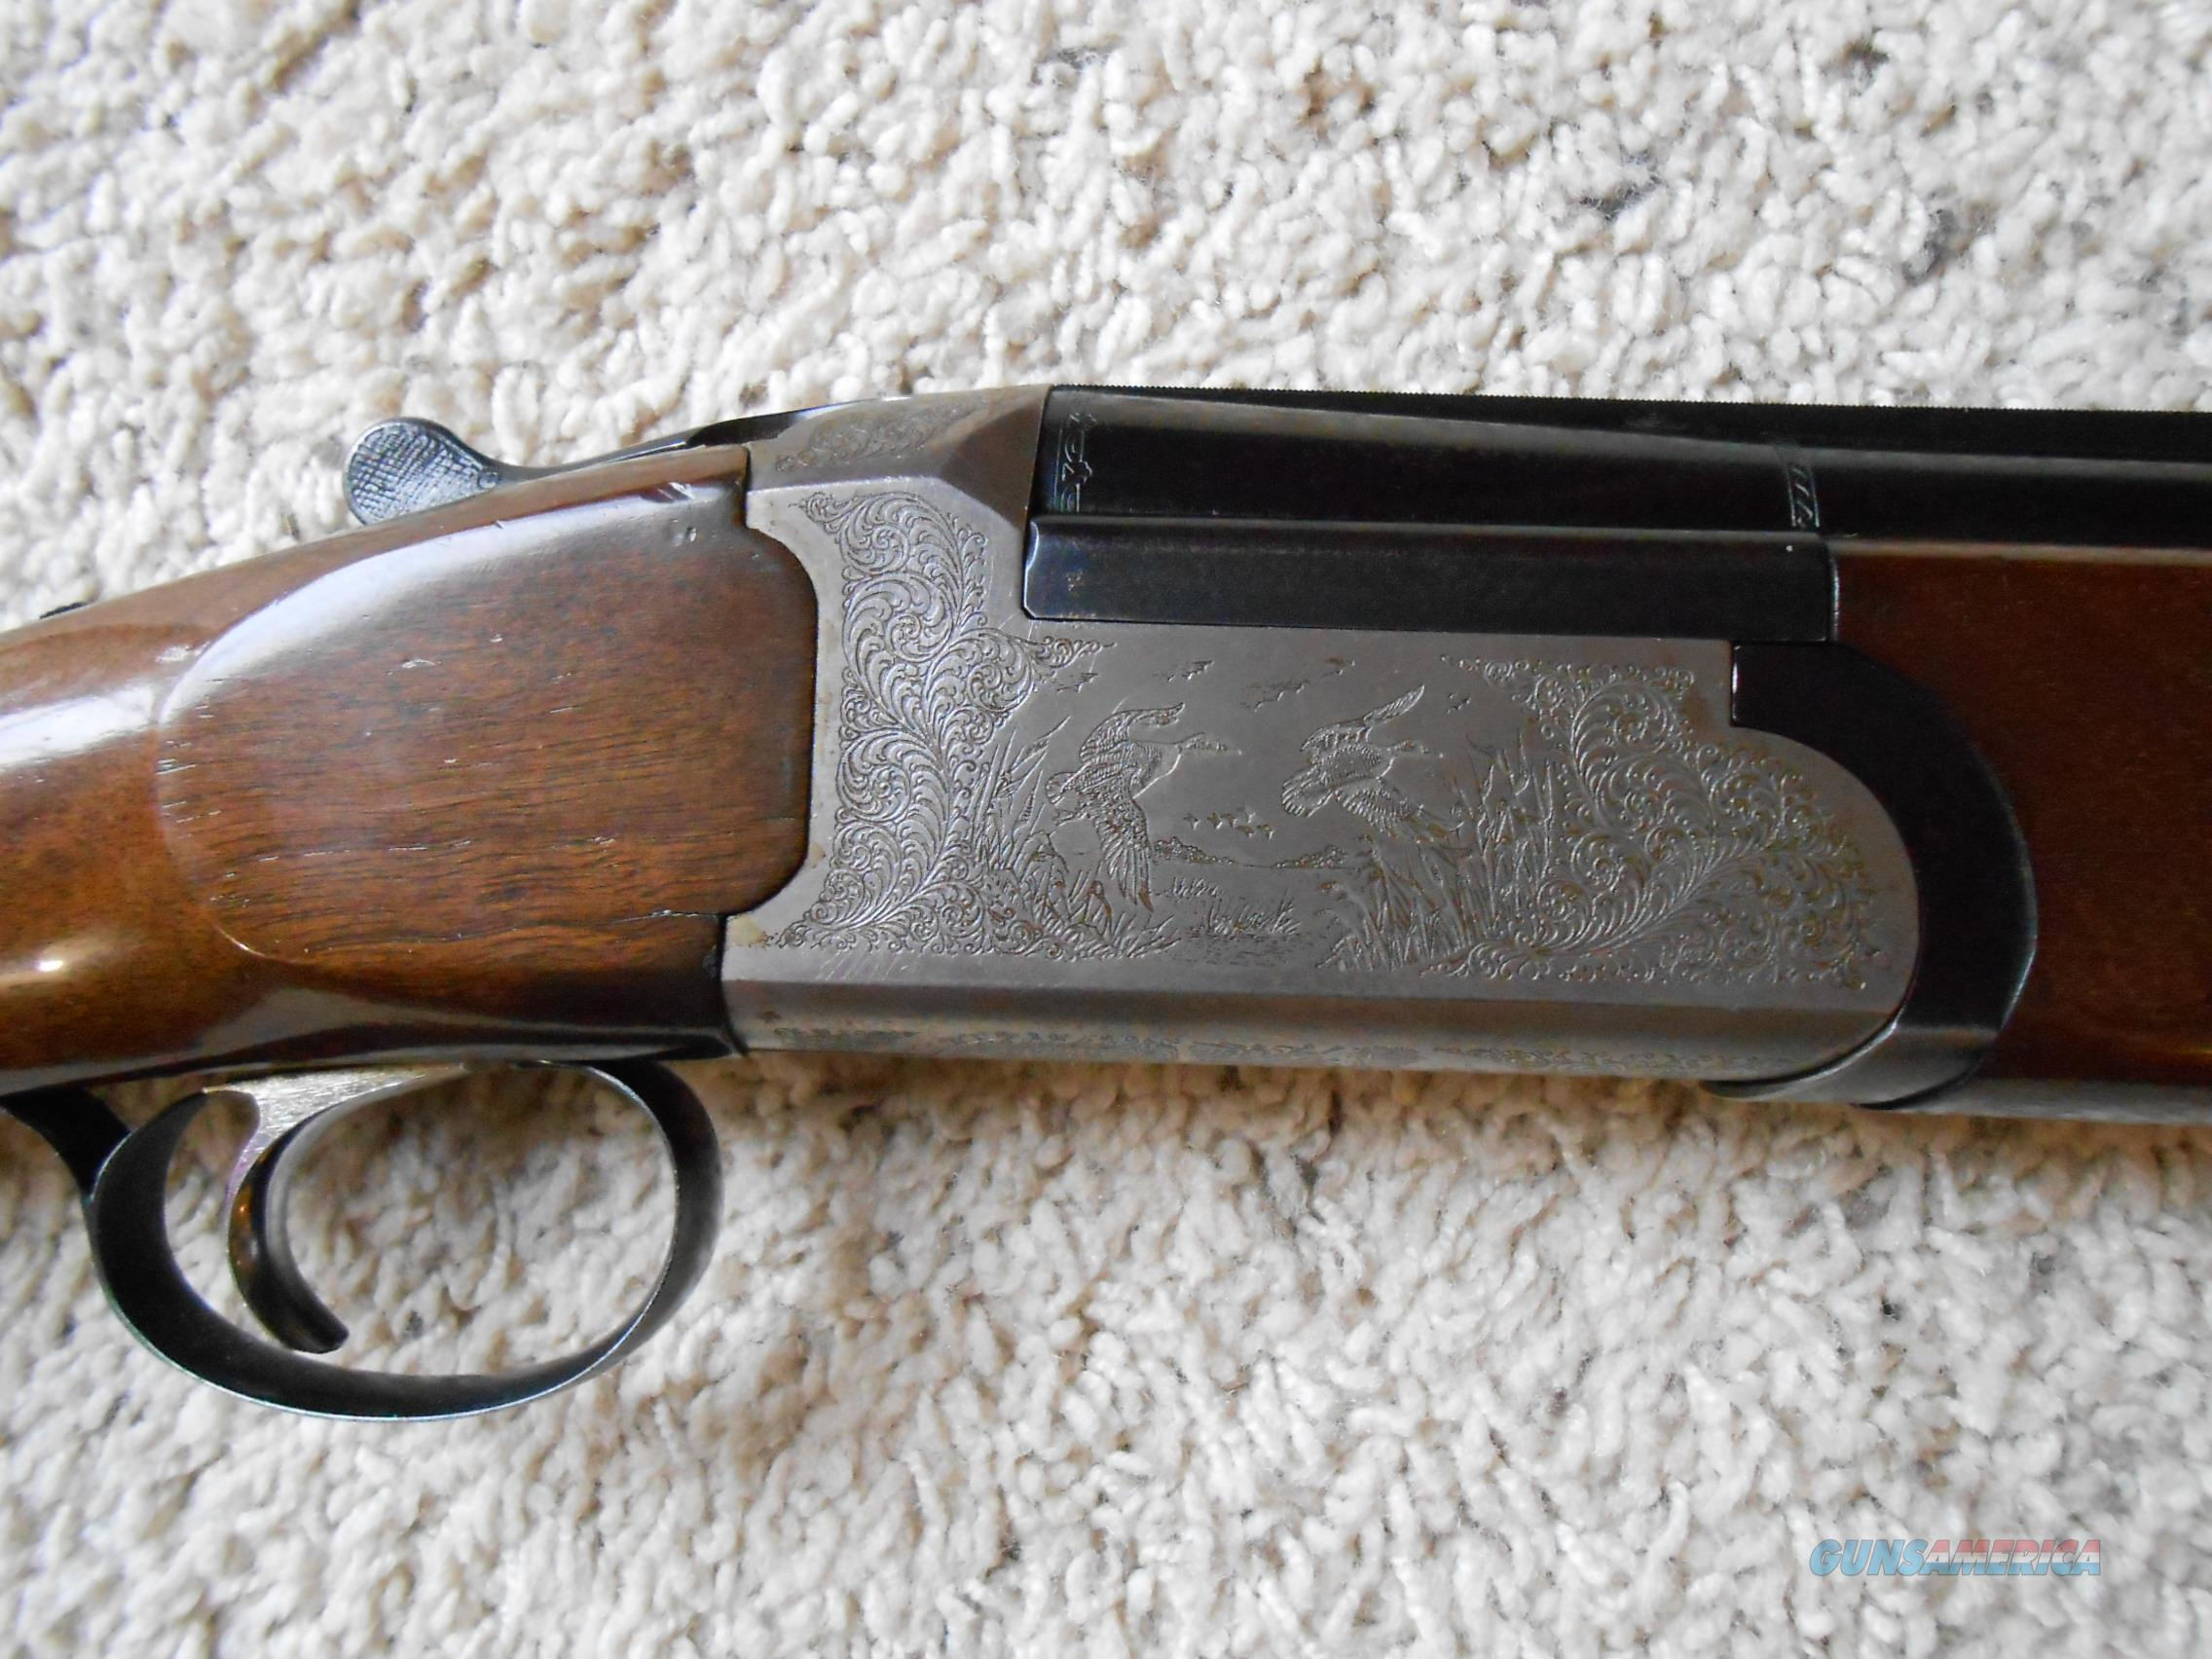 Siles over under shotgun made in italy 12 ga for sale for Made com italia